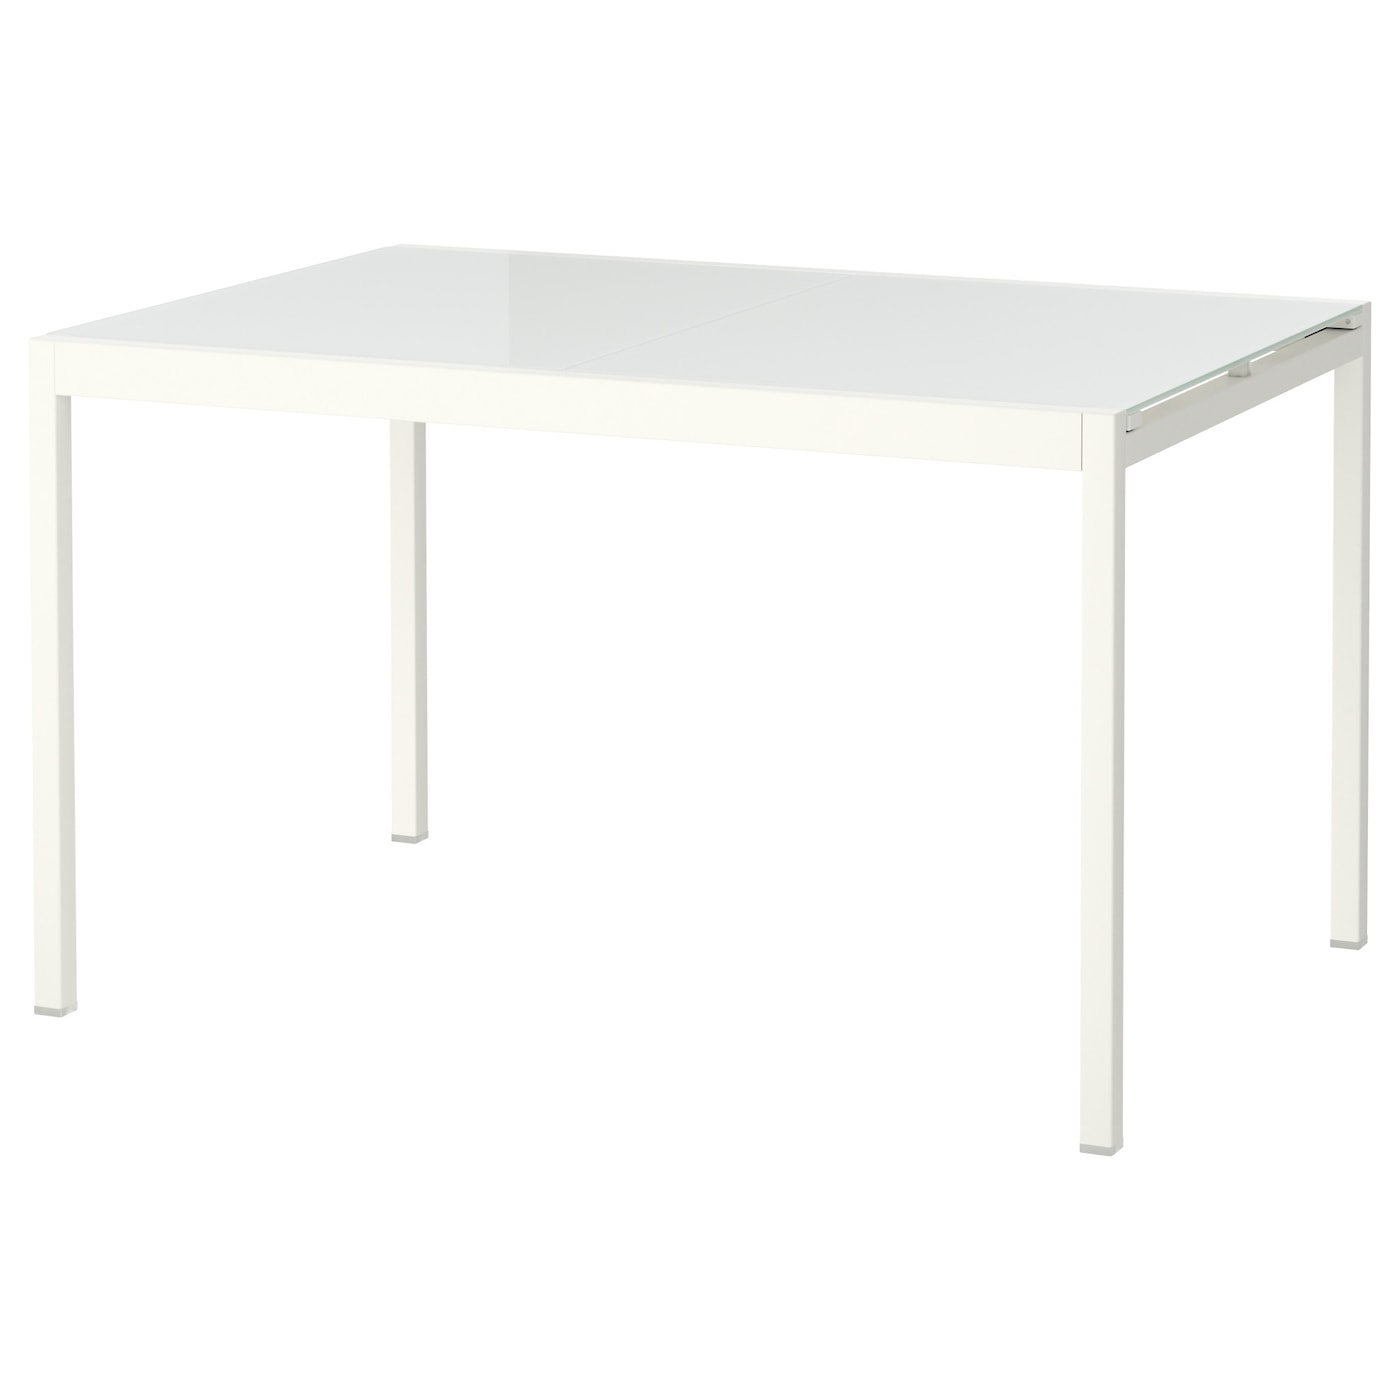 glivarp extendable table white 125 188x85 cm ikea